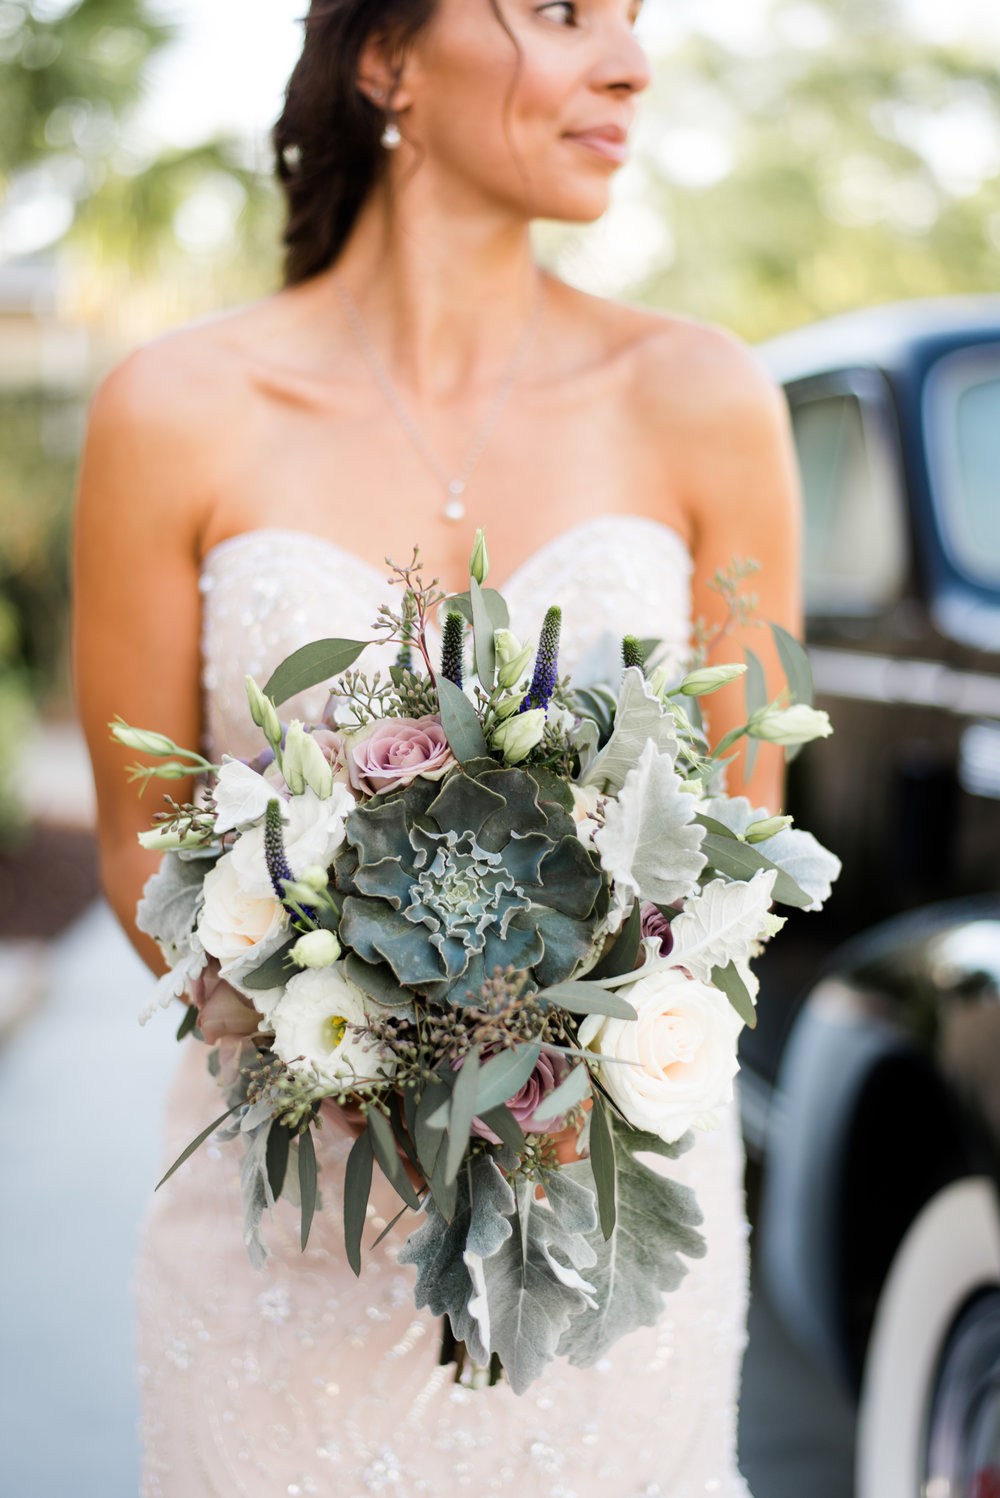 ECLECTIC FALL WEDDING AT WRIGHTSVILLE MANOR | SELENIA + JAMES